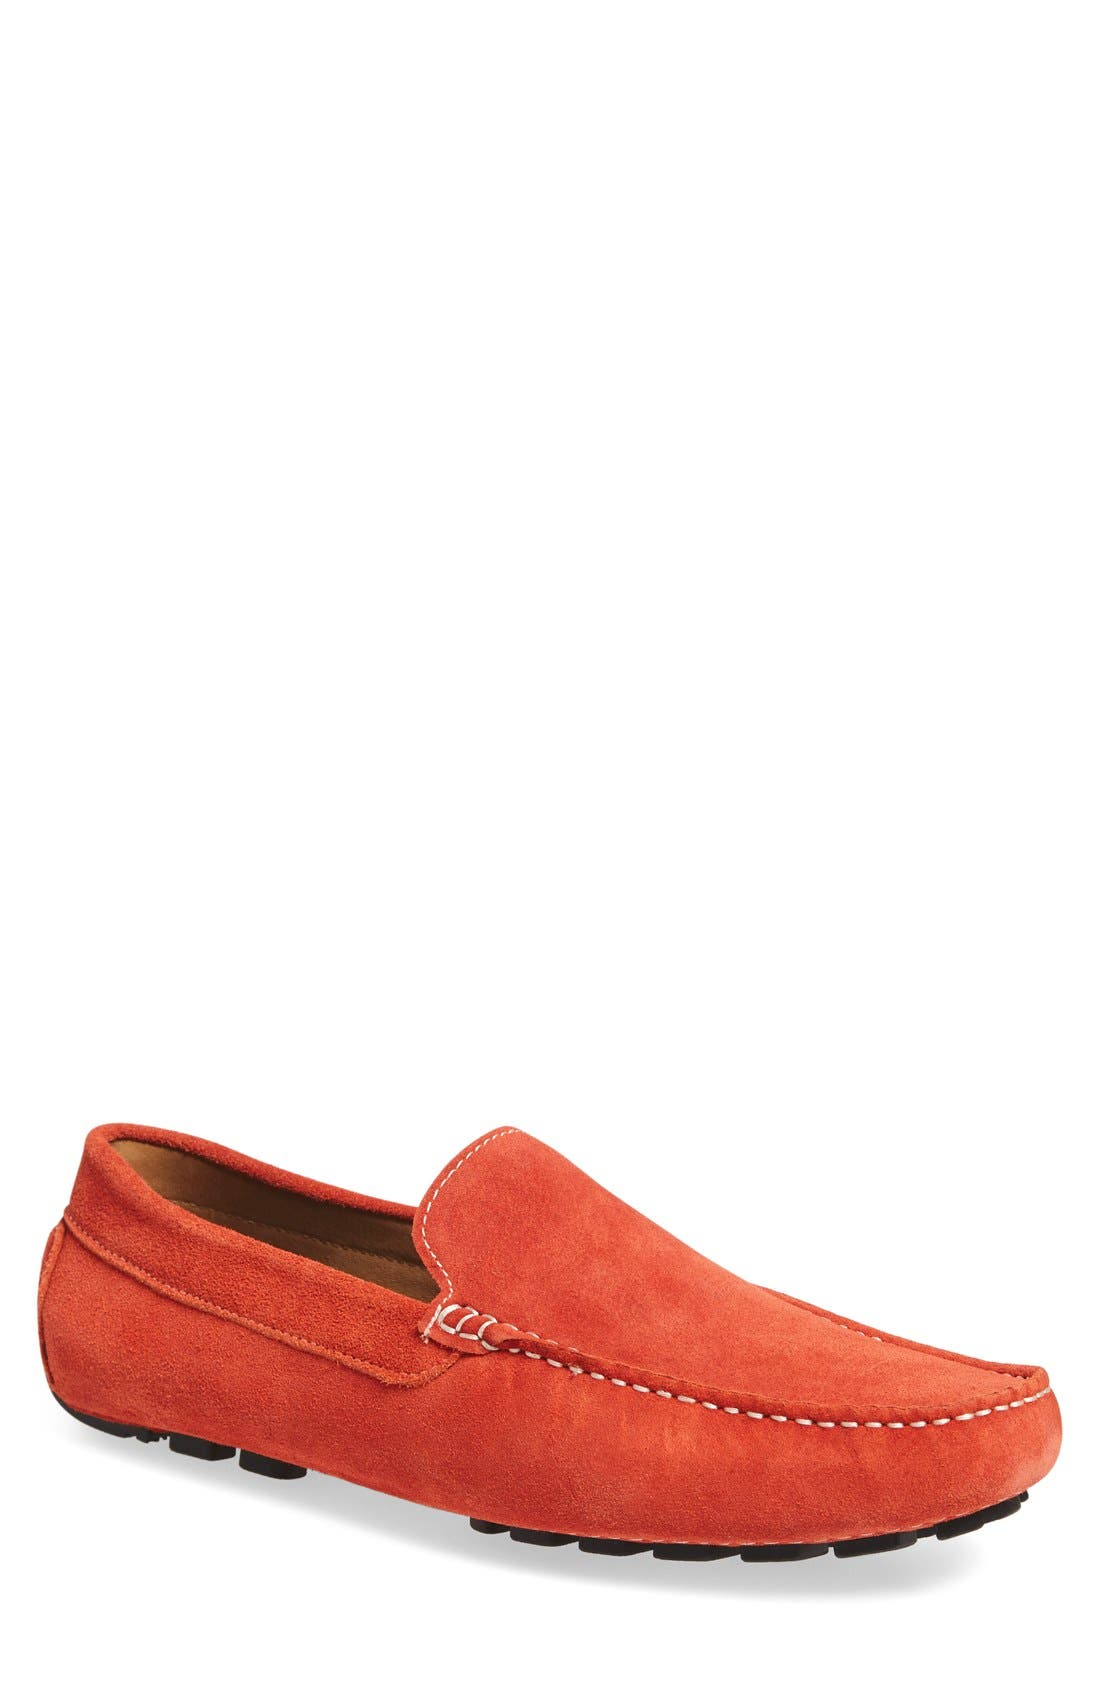 'Picasso' Slip-On Driver,                             Main thumbnail 1, color,                             Orange Leather